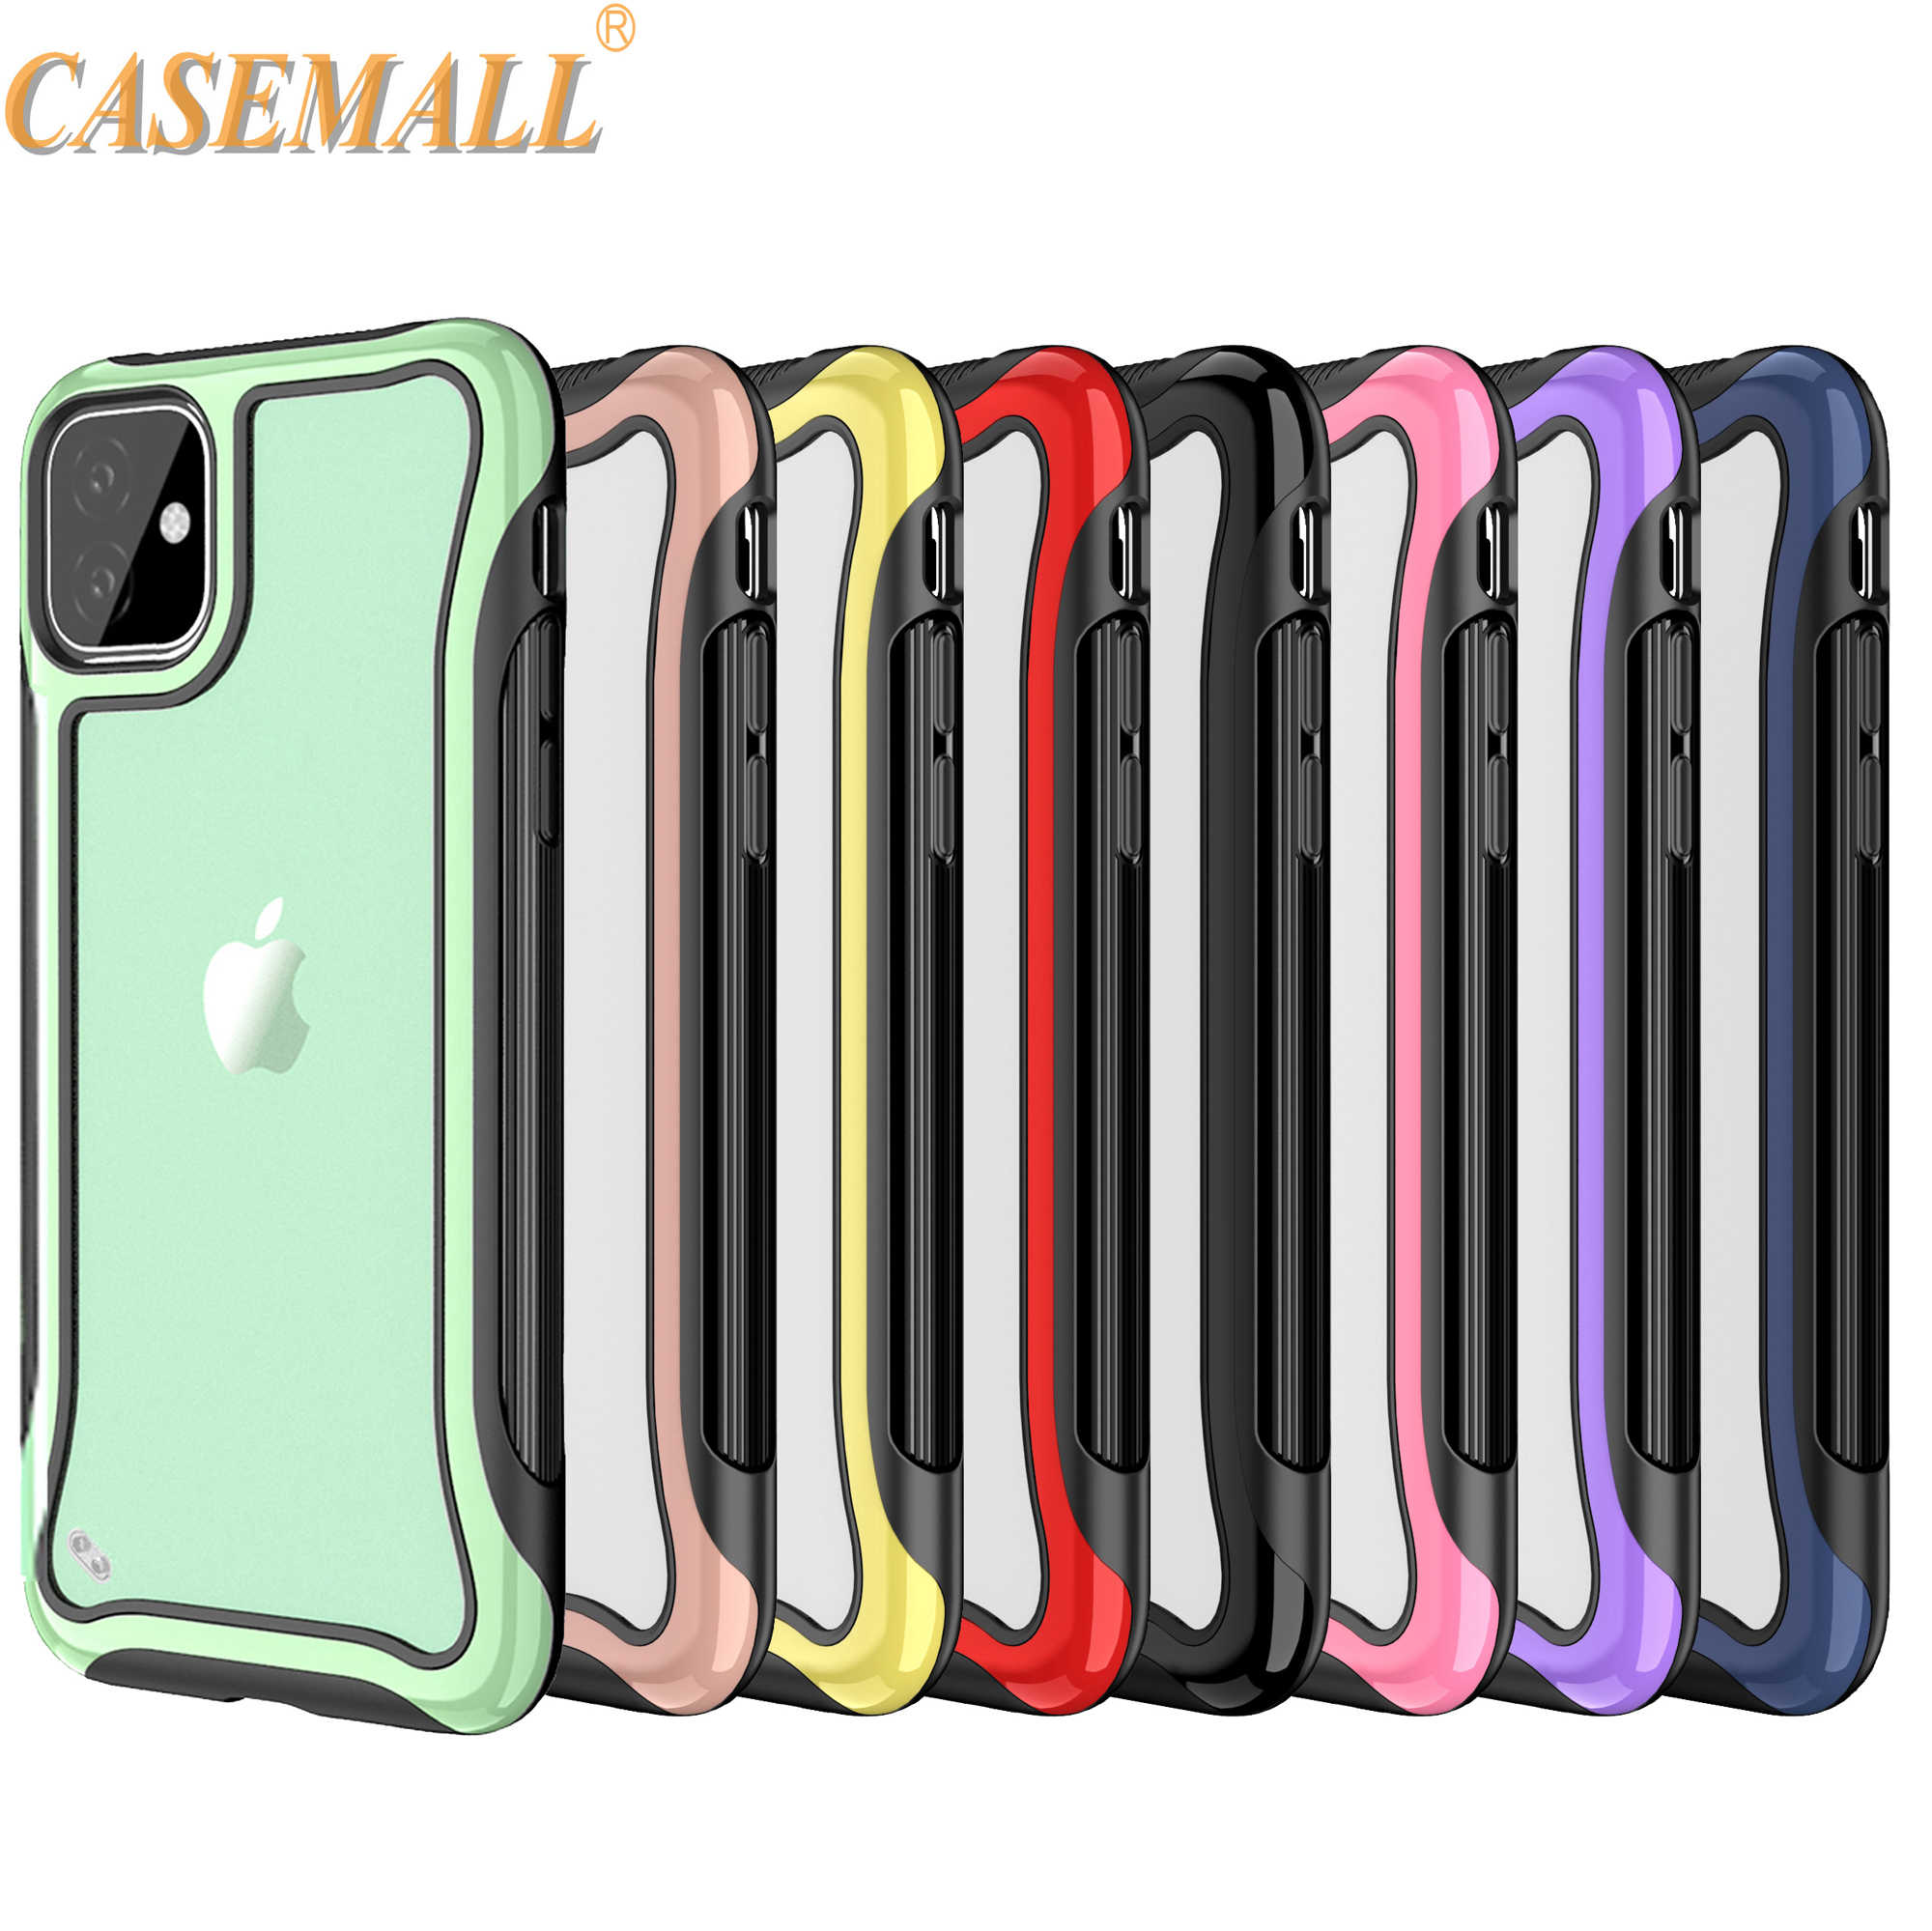 Voor iPhone 11 Pro Max case luxe anti-shock hybrid 3 in een bumper hard clear back cover voor apple iPhone 6 8 7 + Plus XR Xs X